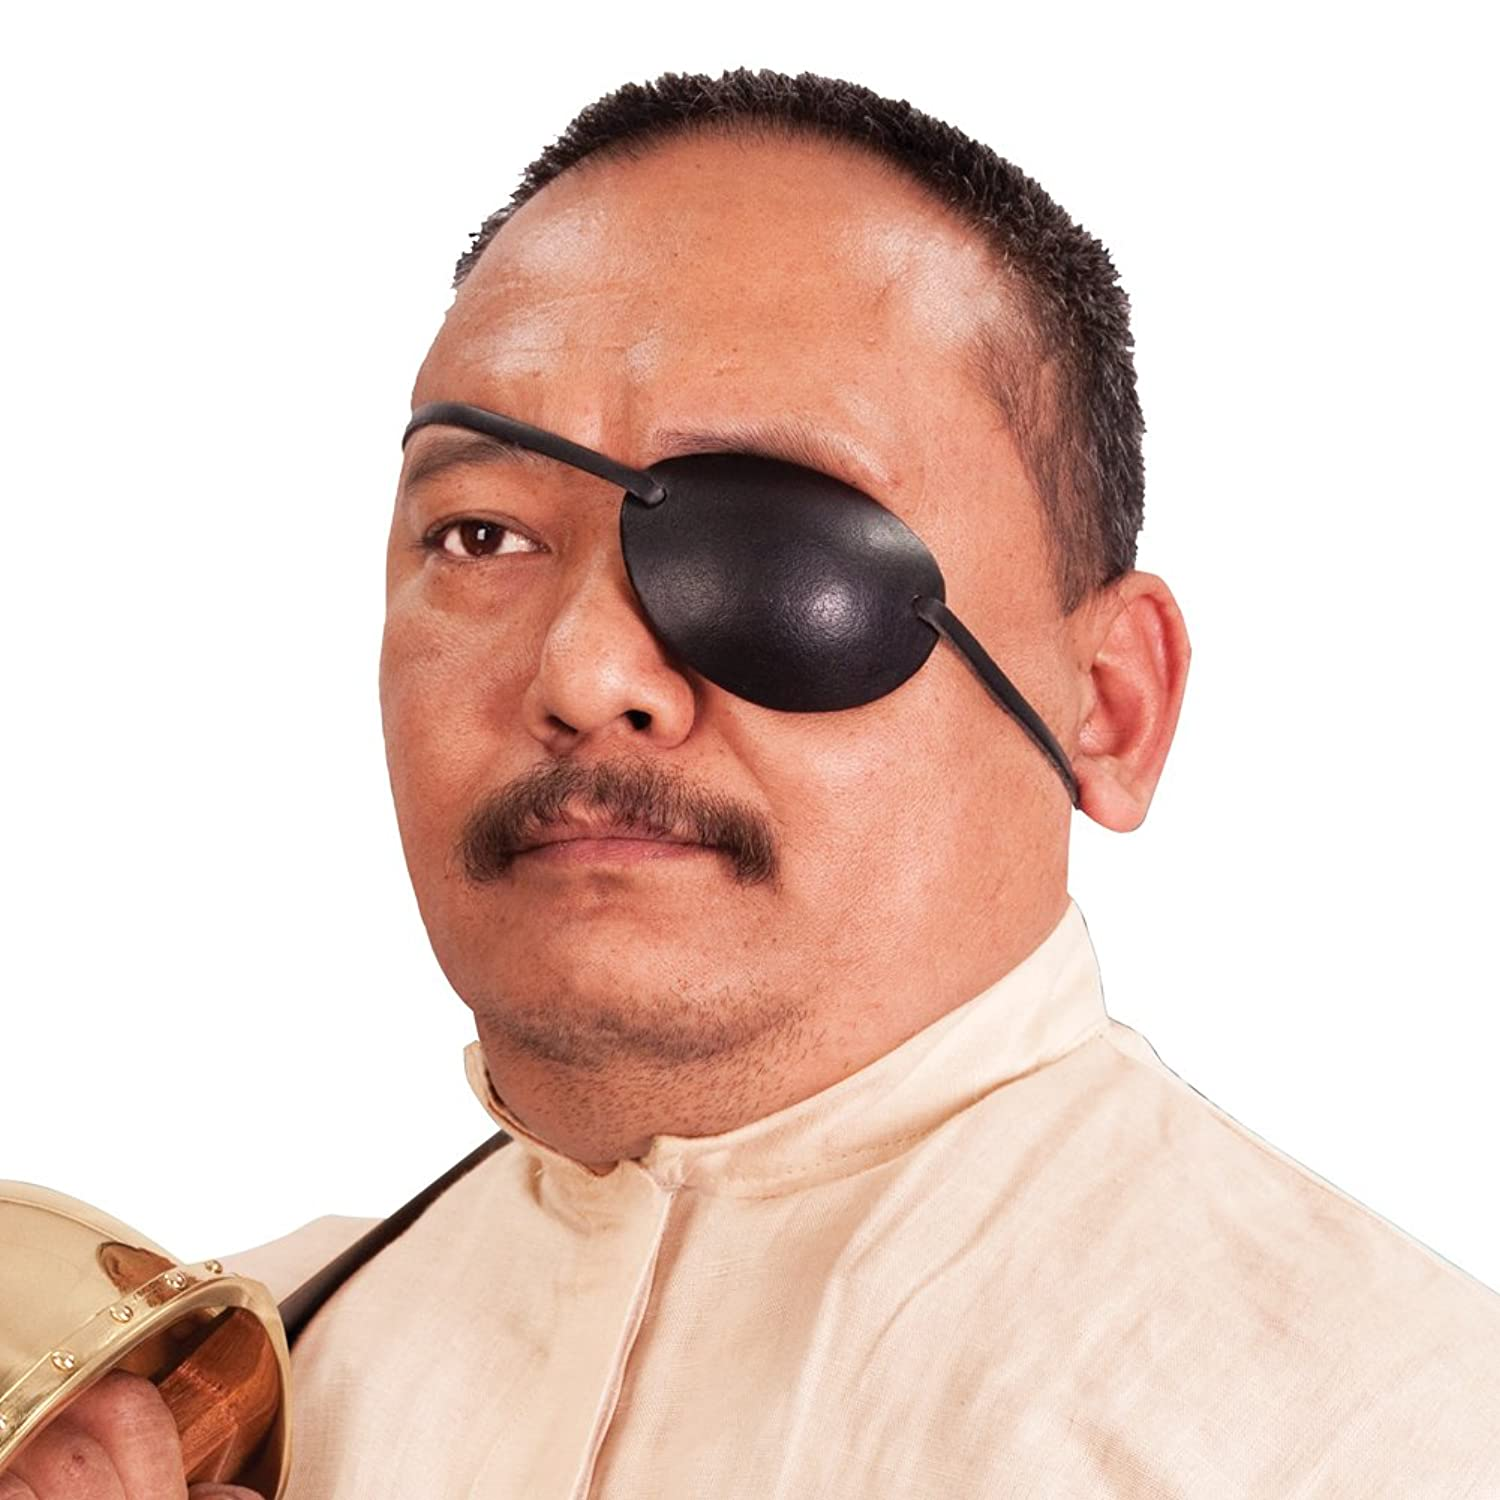 Deluxe Adult Costumes - Men's pirate black leather left eye patch costume accessory